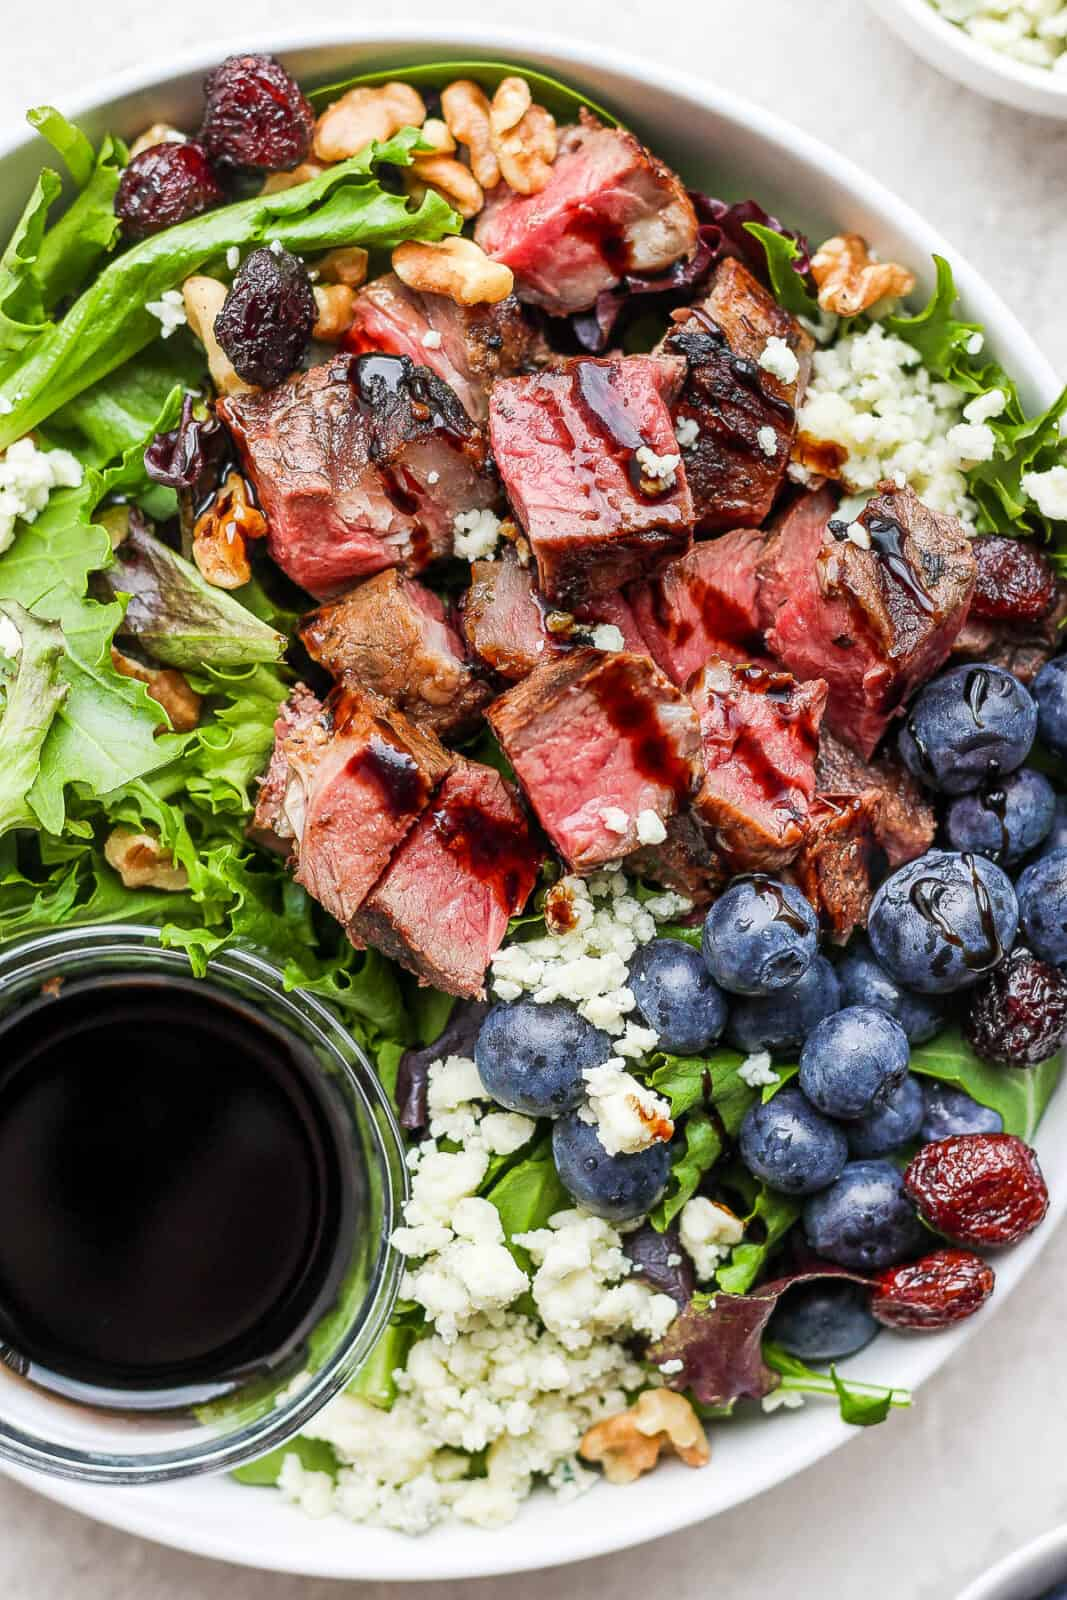 Easy steak salad with a drizzle of dressing on top.